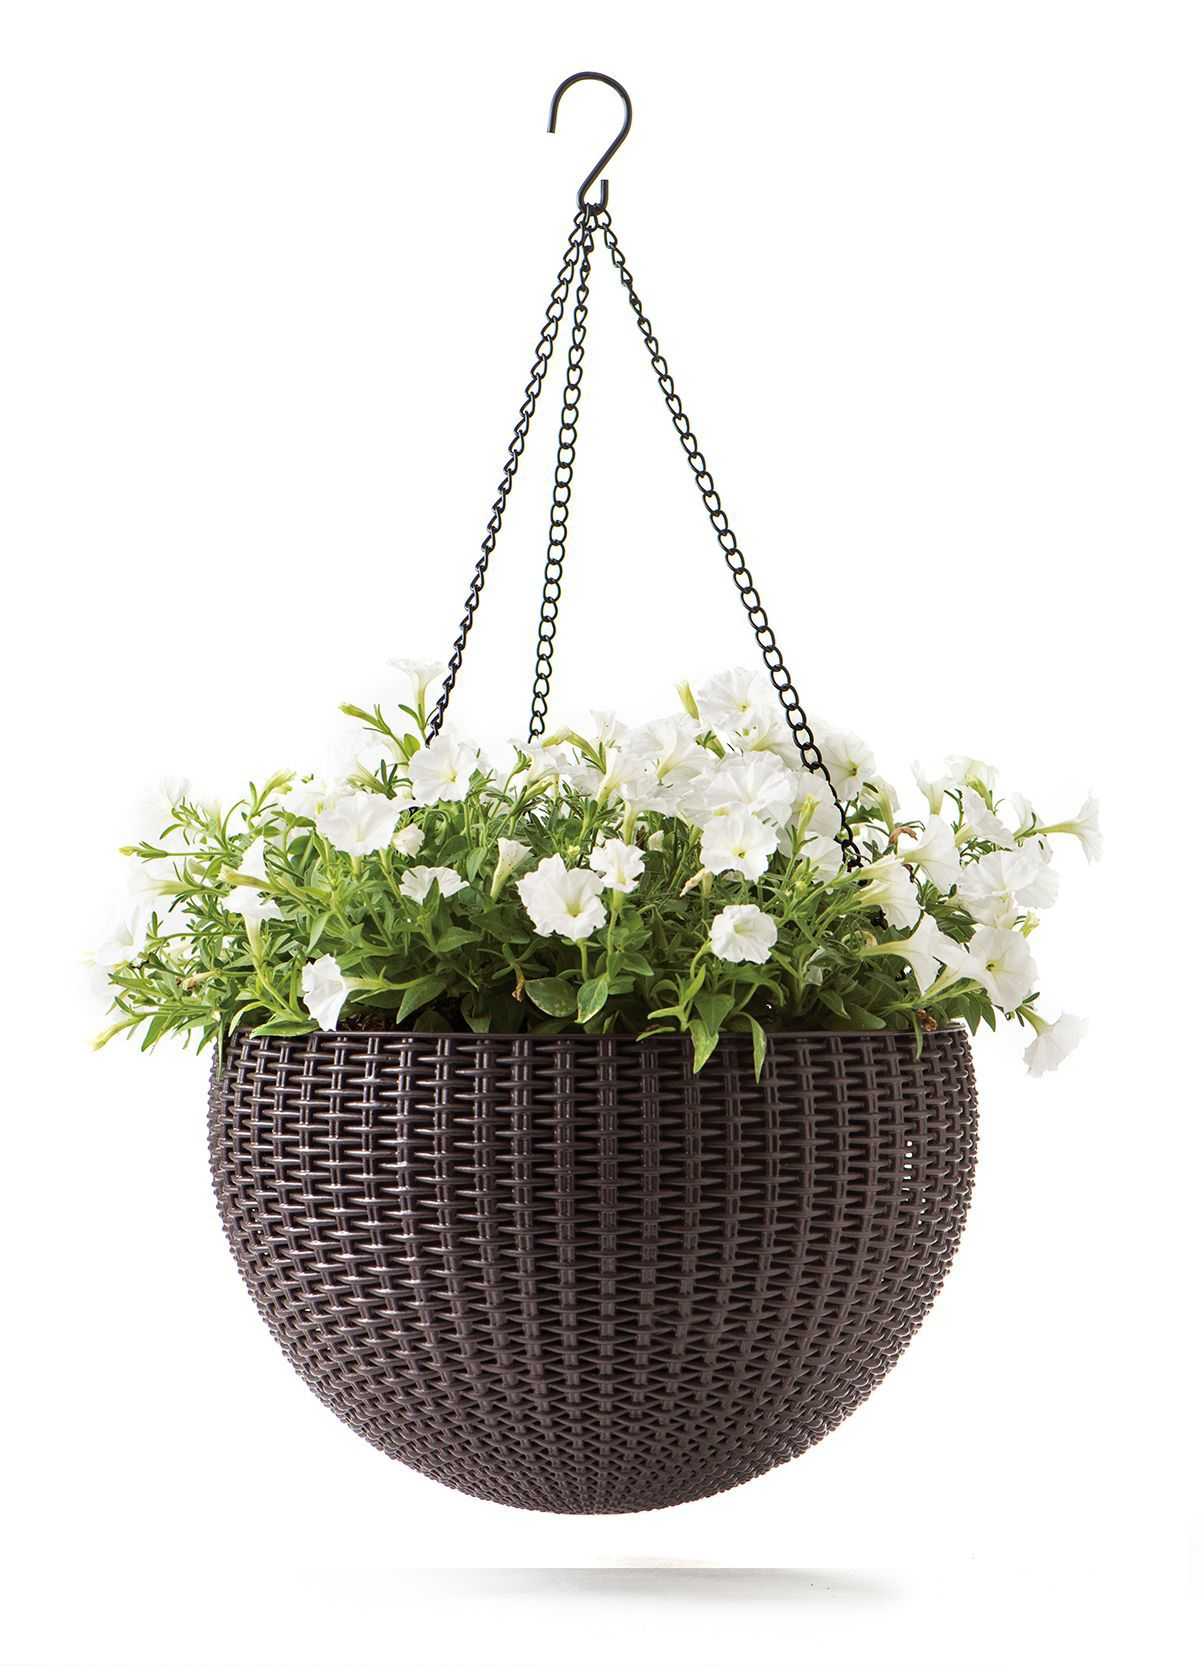 Keter Rattan-Effect Anthracite Hanging Planter 355.6 mm | Departments | DIY  at B&Q